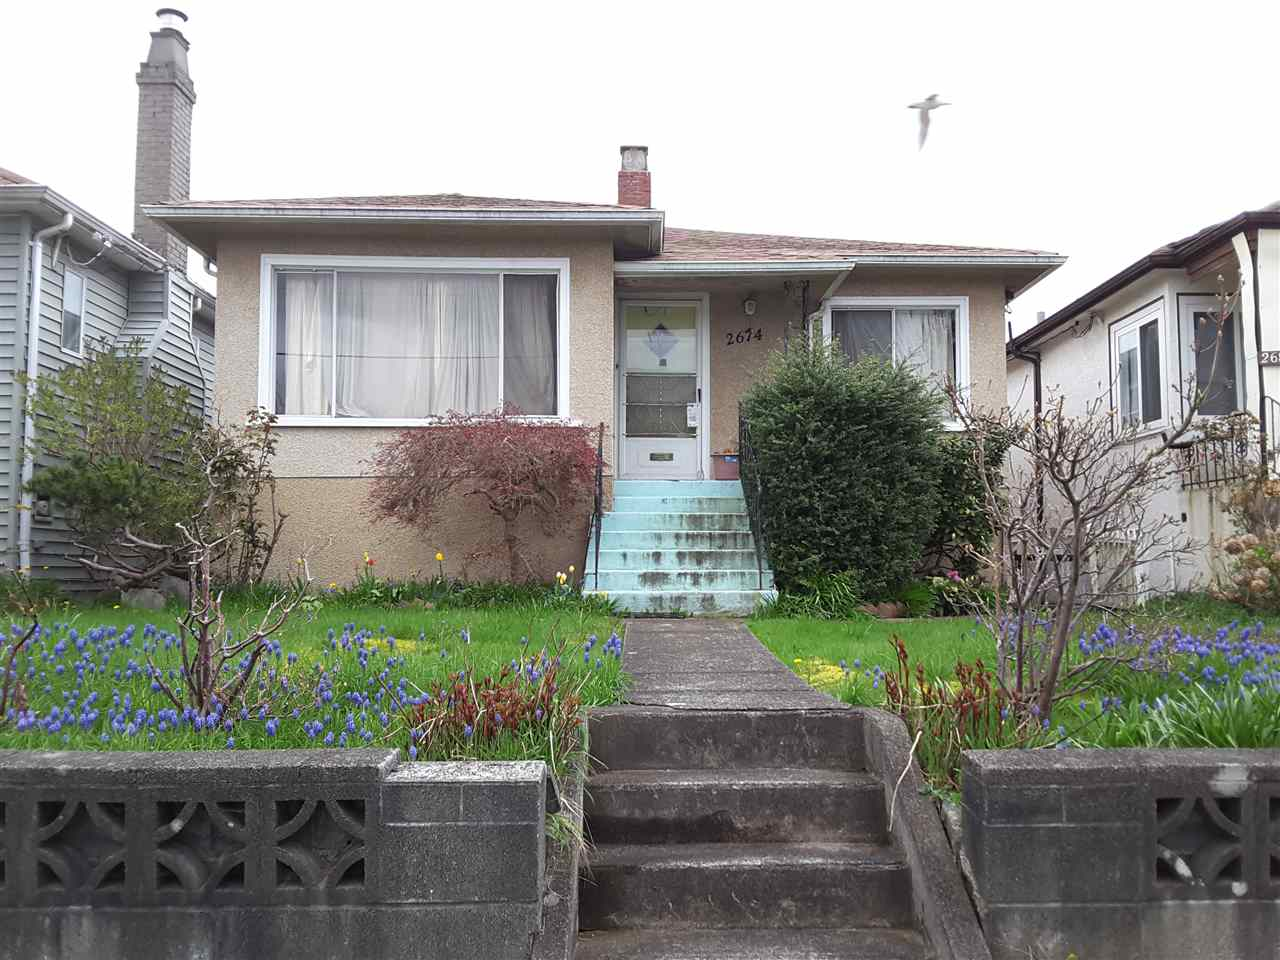 Main Photo: 2674 GARDEN Drive in Vancouver: Grandview VE House for sale (Vancouver East)  : MLS(r) # R2157339